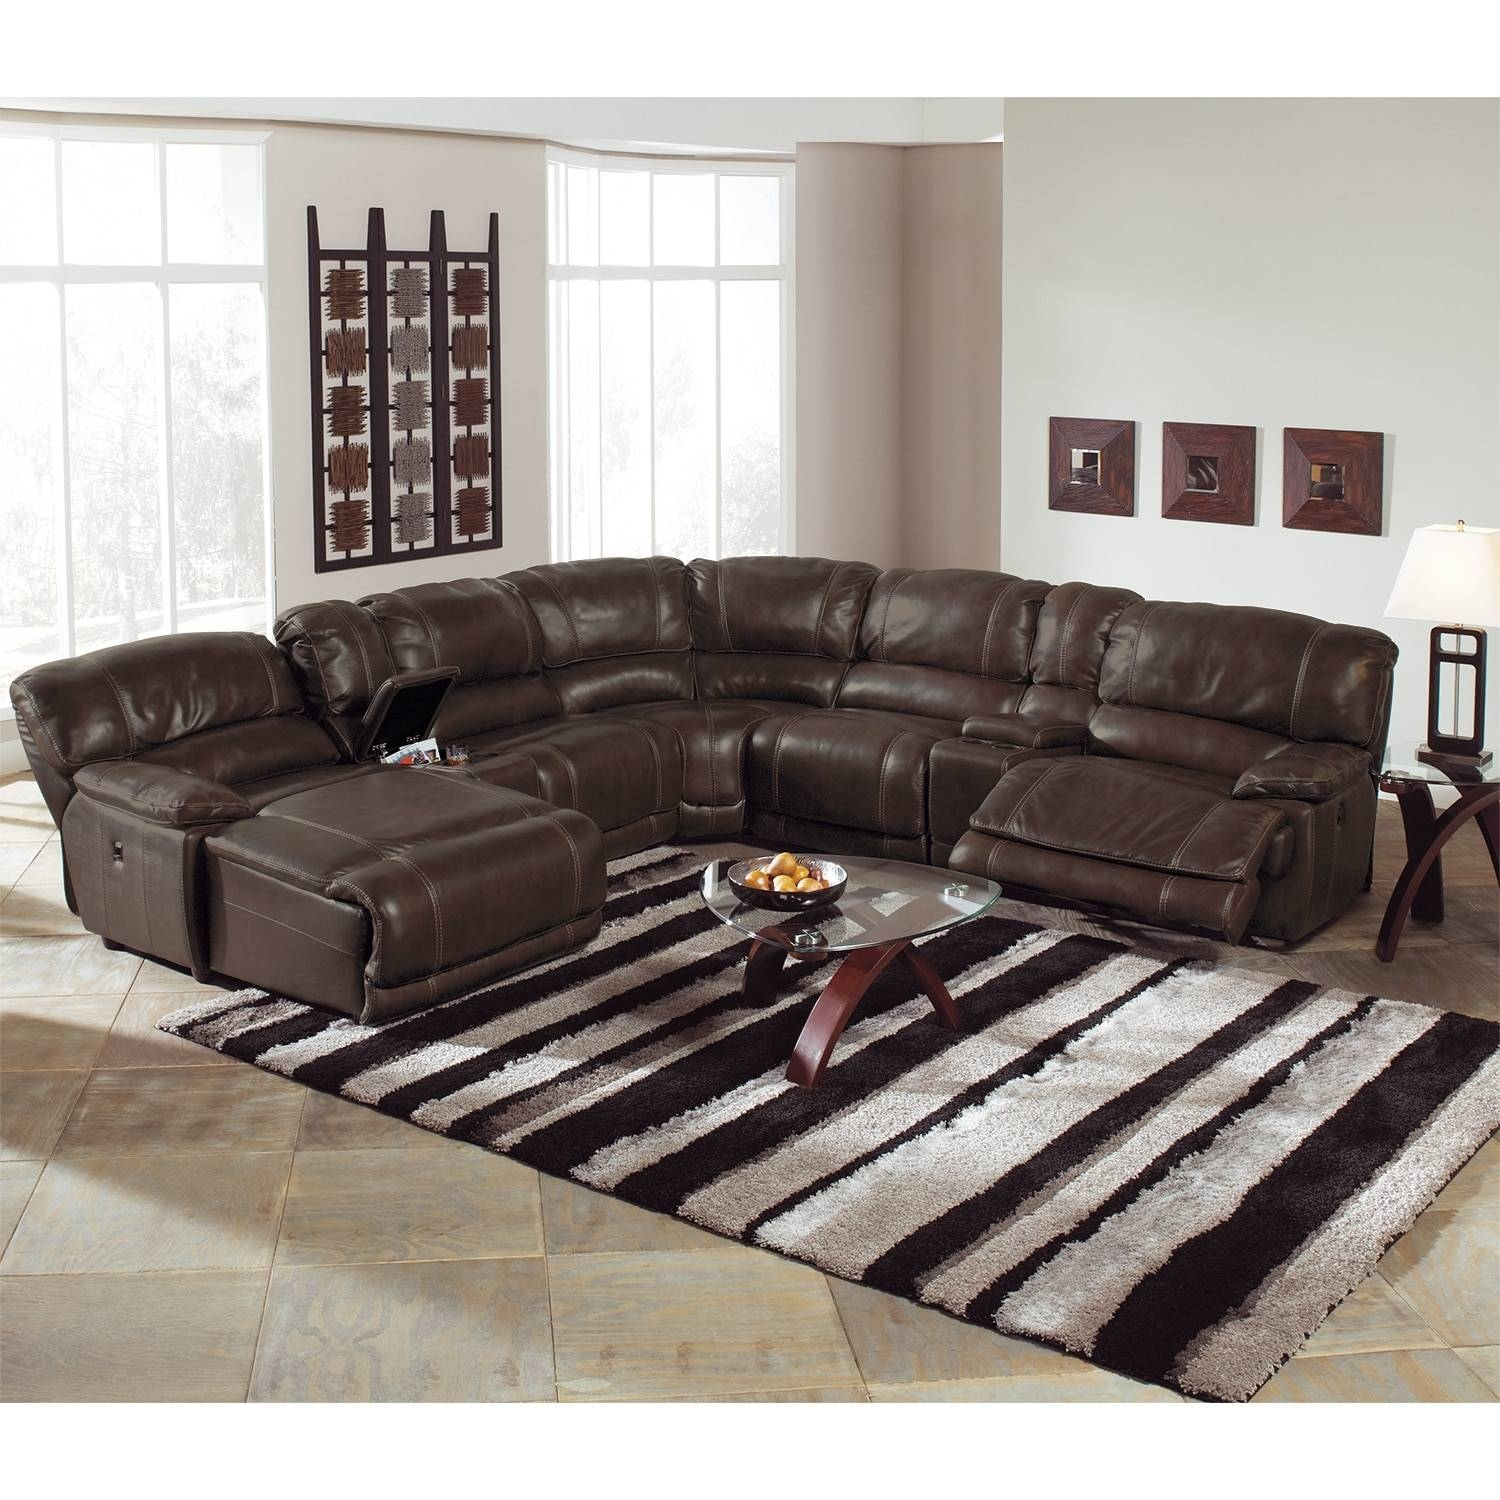 St. Malo 6-Piece Power Reclining Sectional With Left-Facing Chaise for 6 Piece Leather Sectional Sofa (Image 28 of 30)